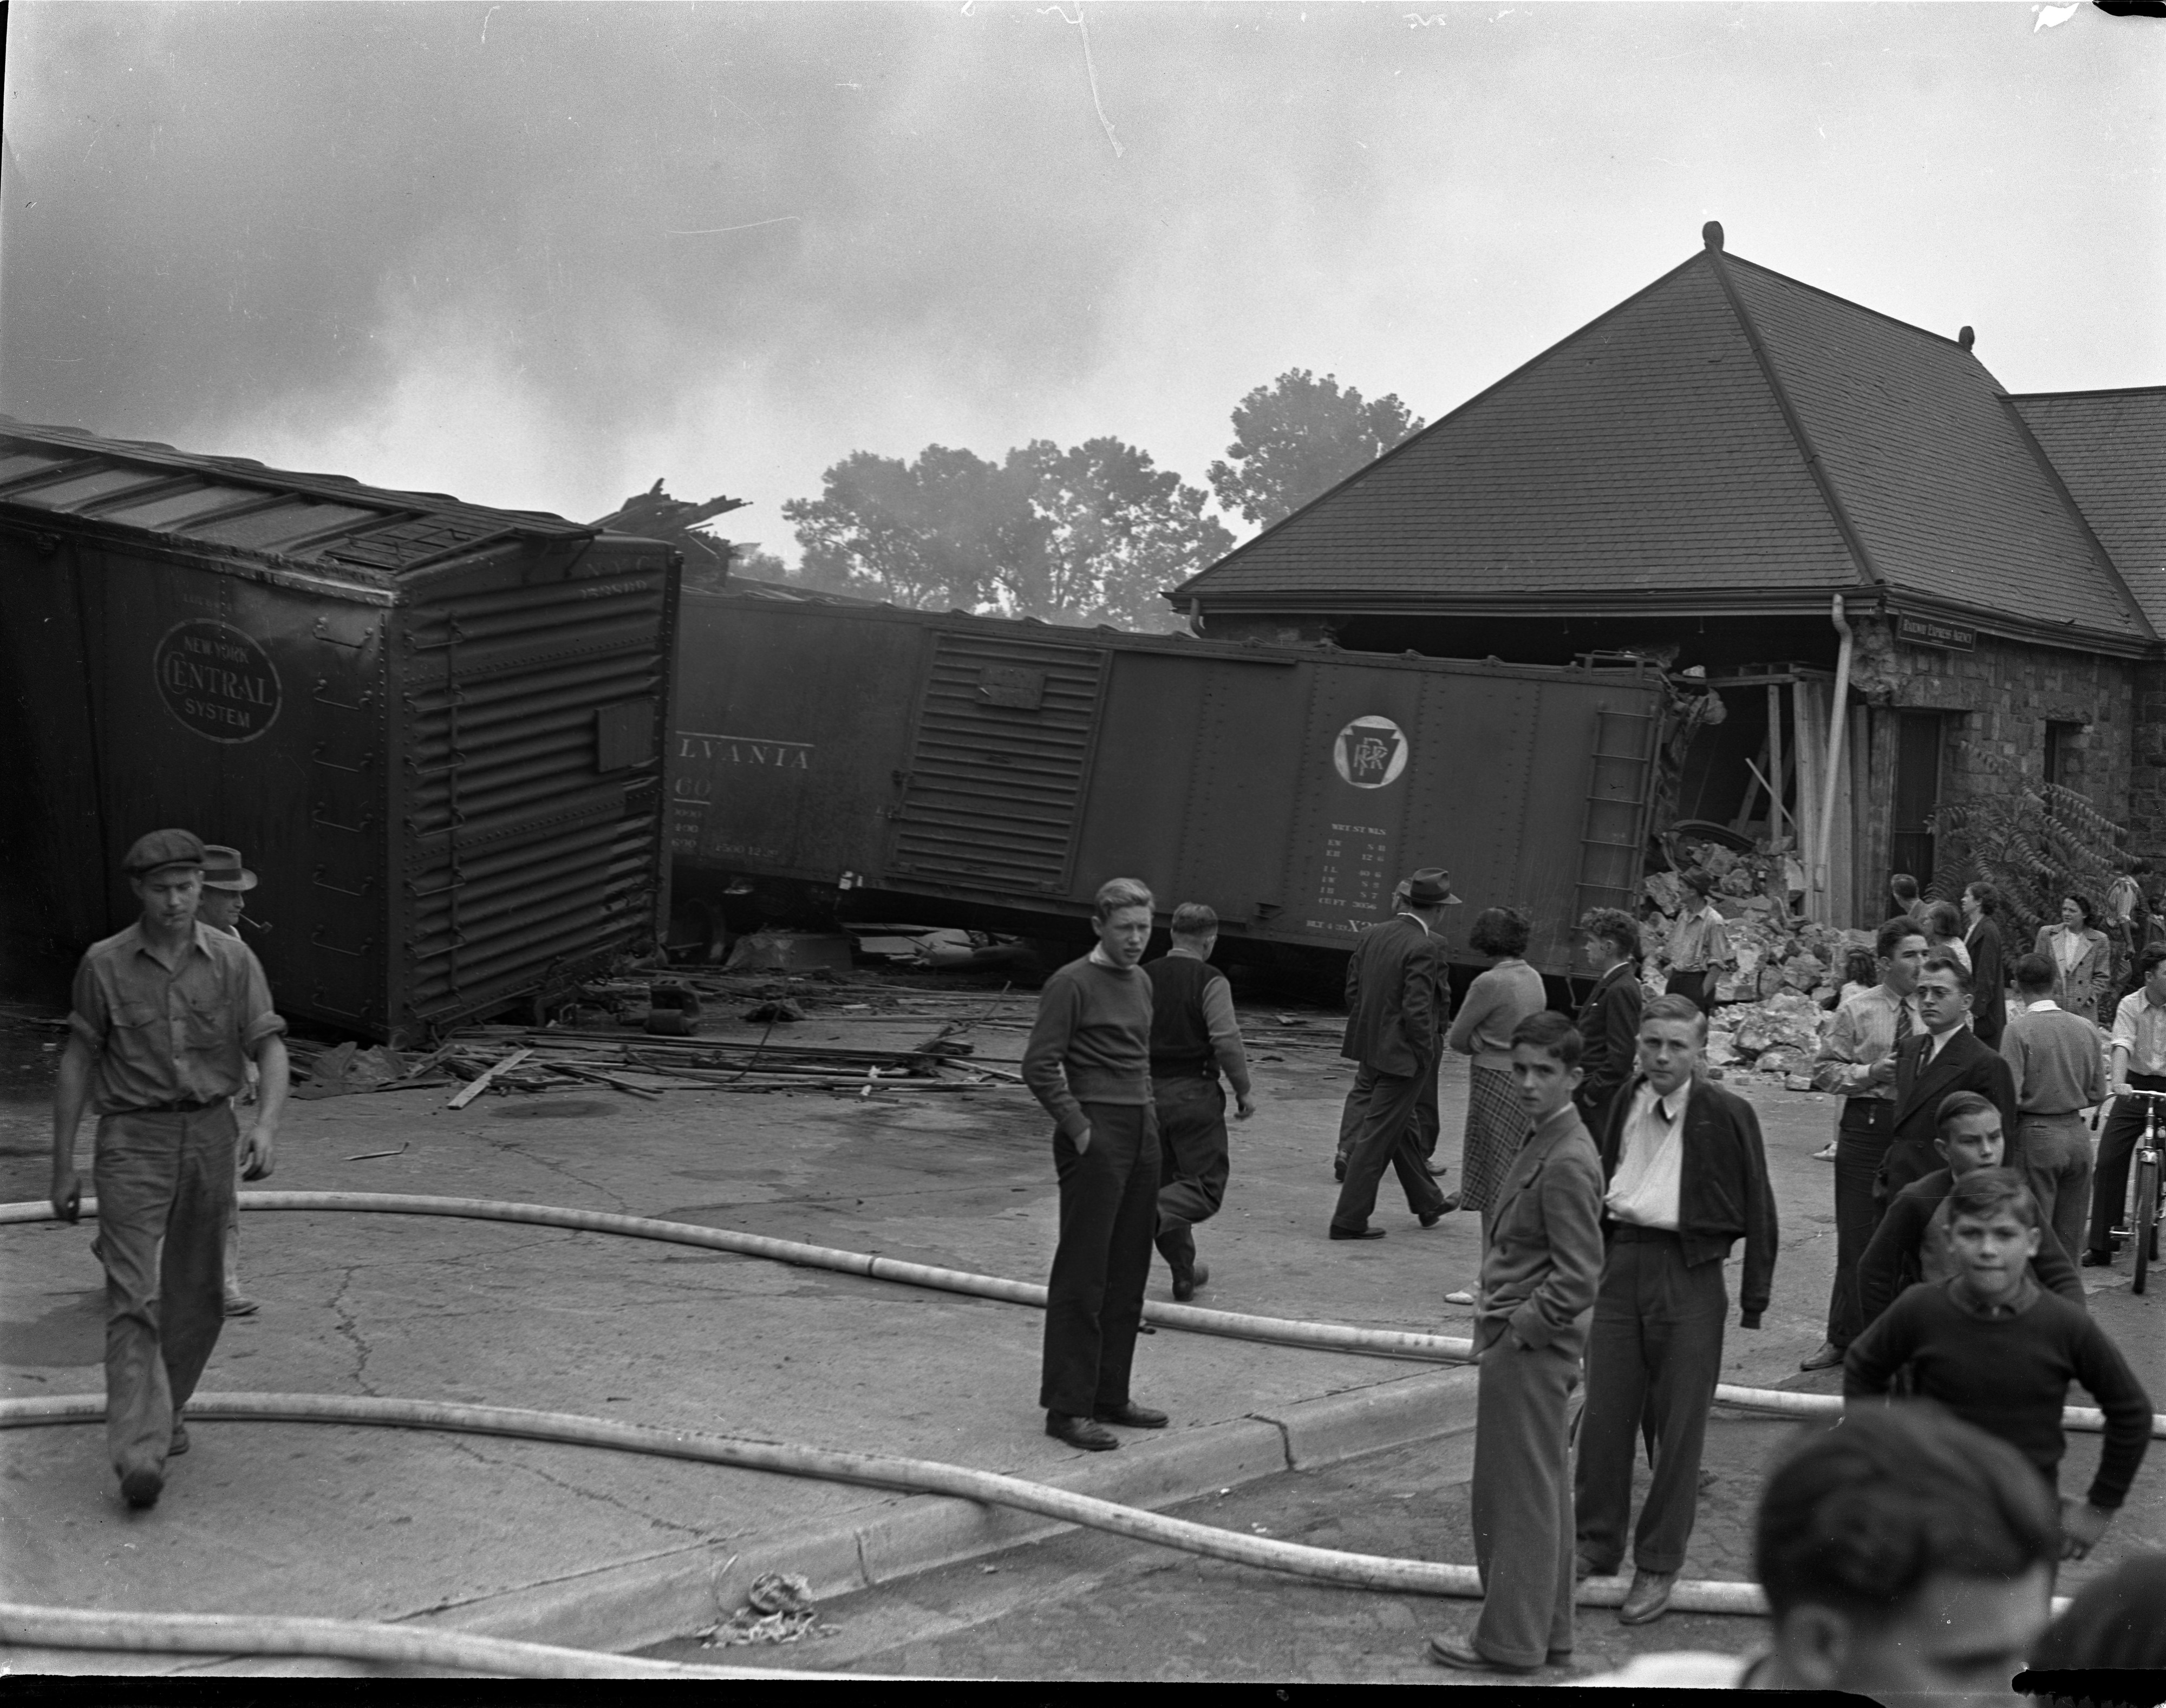 Train Wreck at Michigan Central Station, September 1940 image